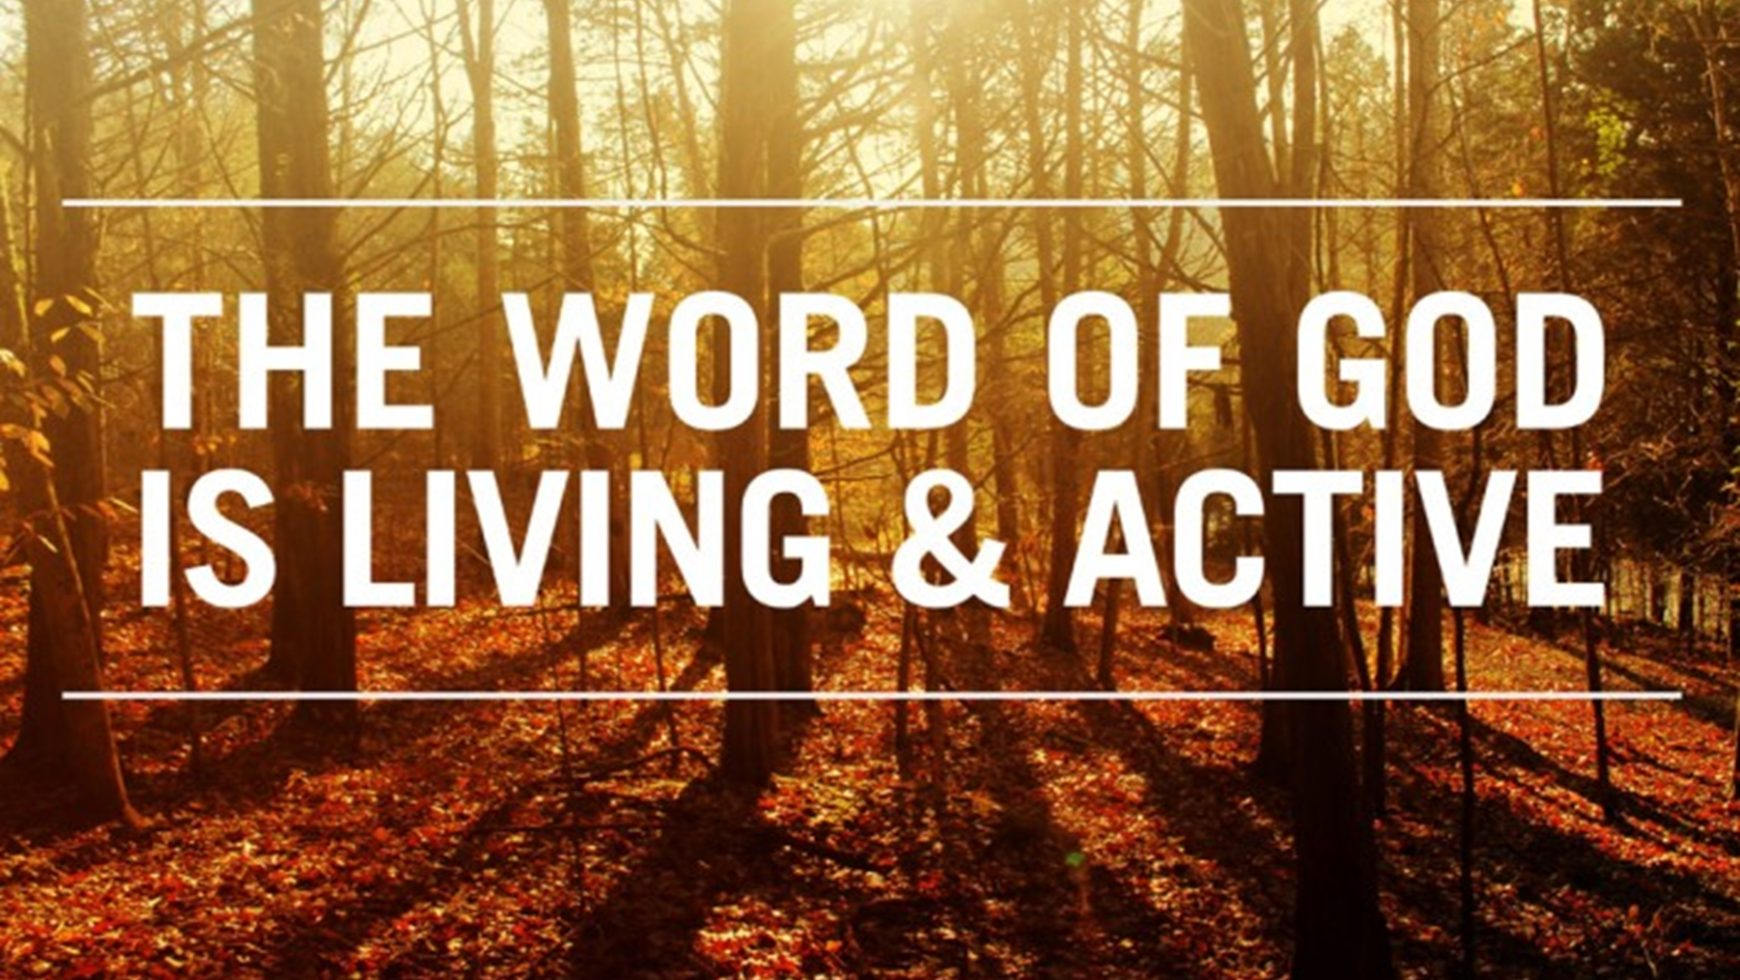 God's word is alive!